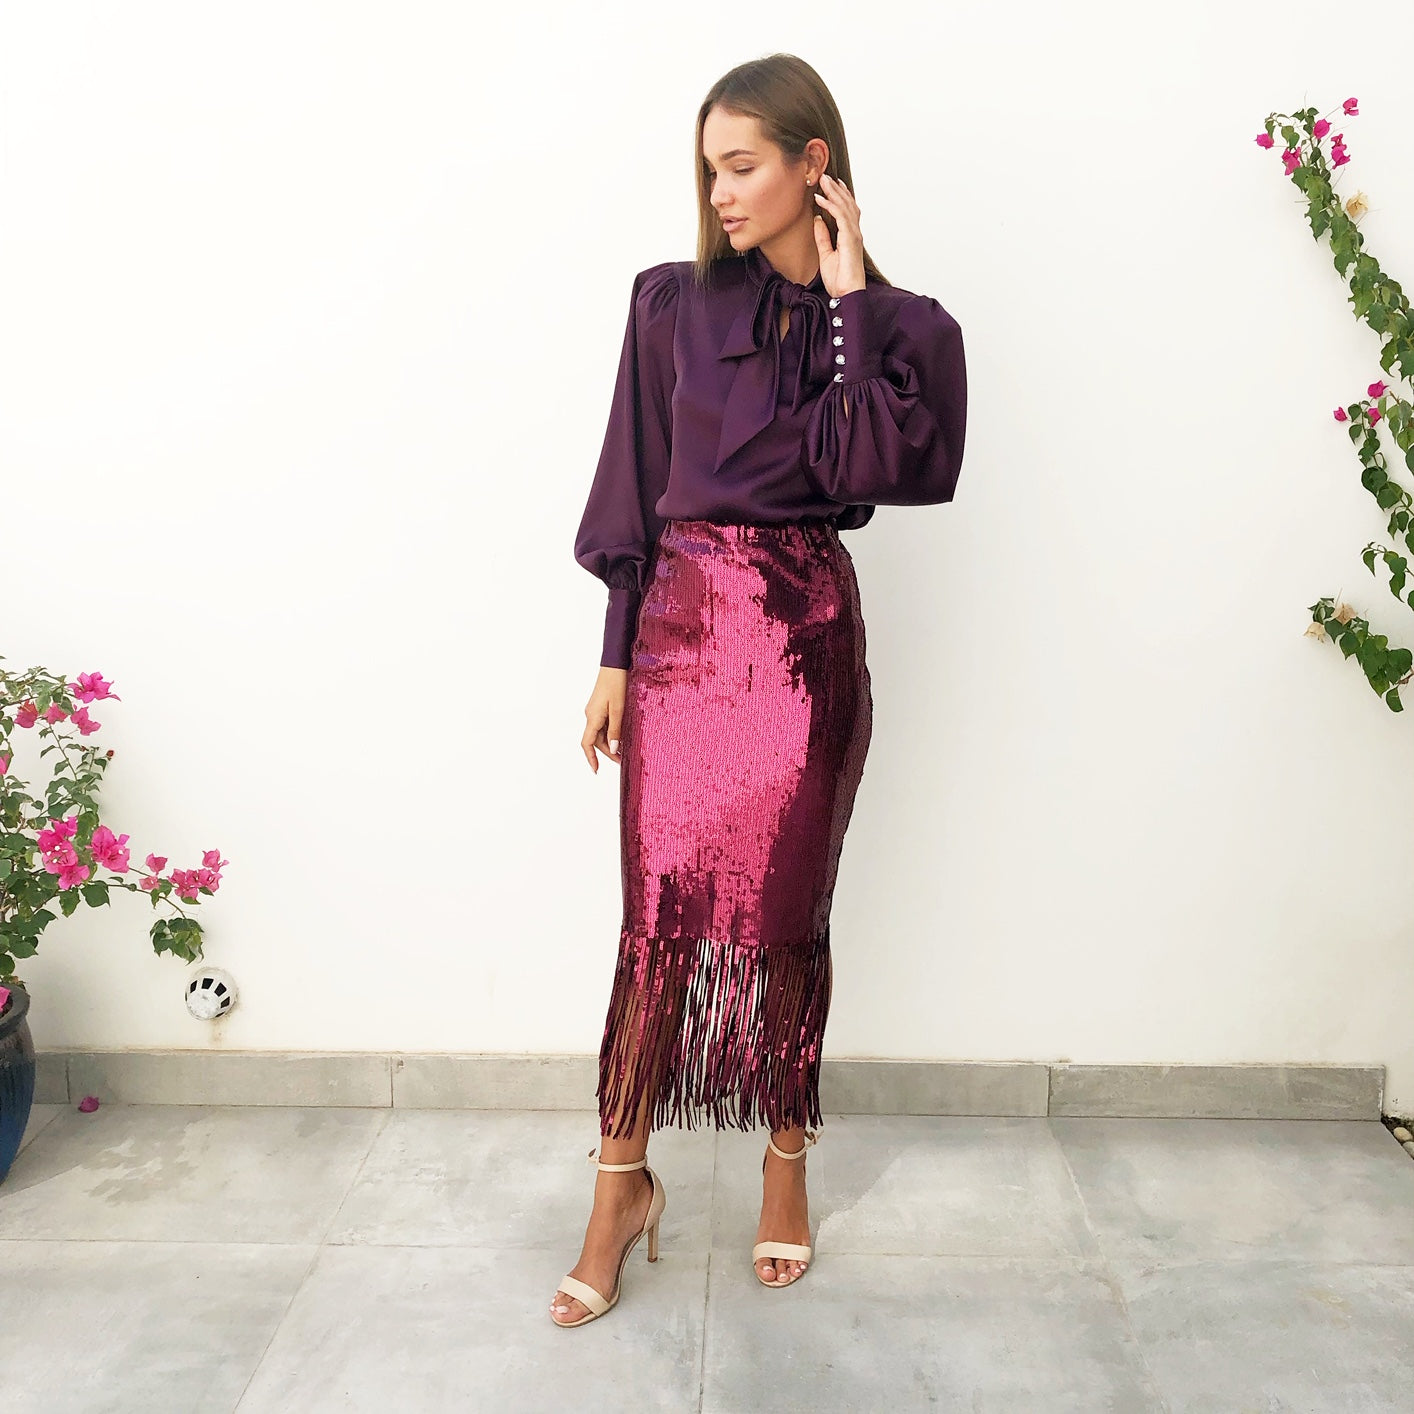 AW18 MAROON SEQUINS SKIRT WITH SEQUINS FRINGES